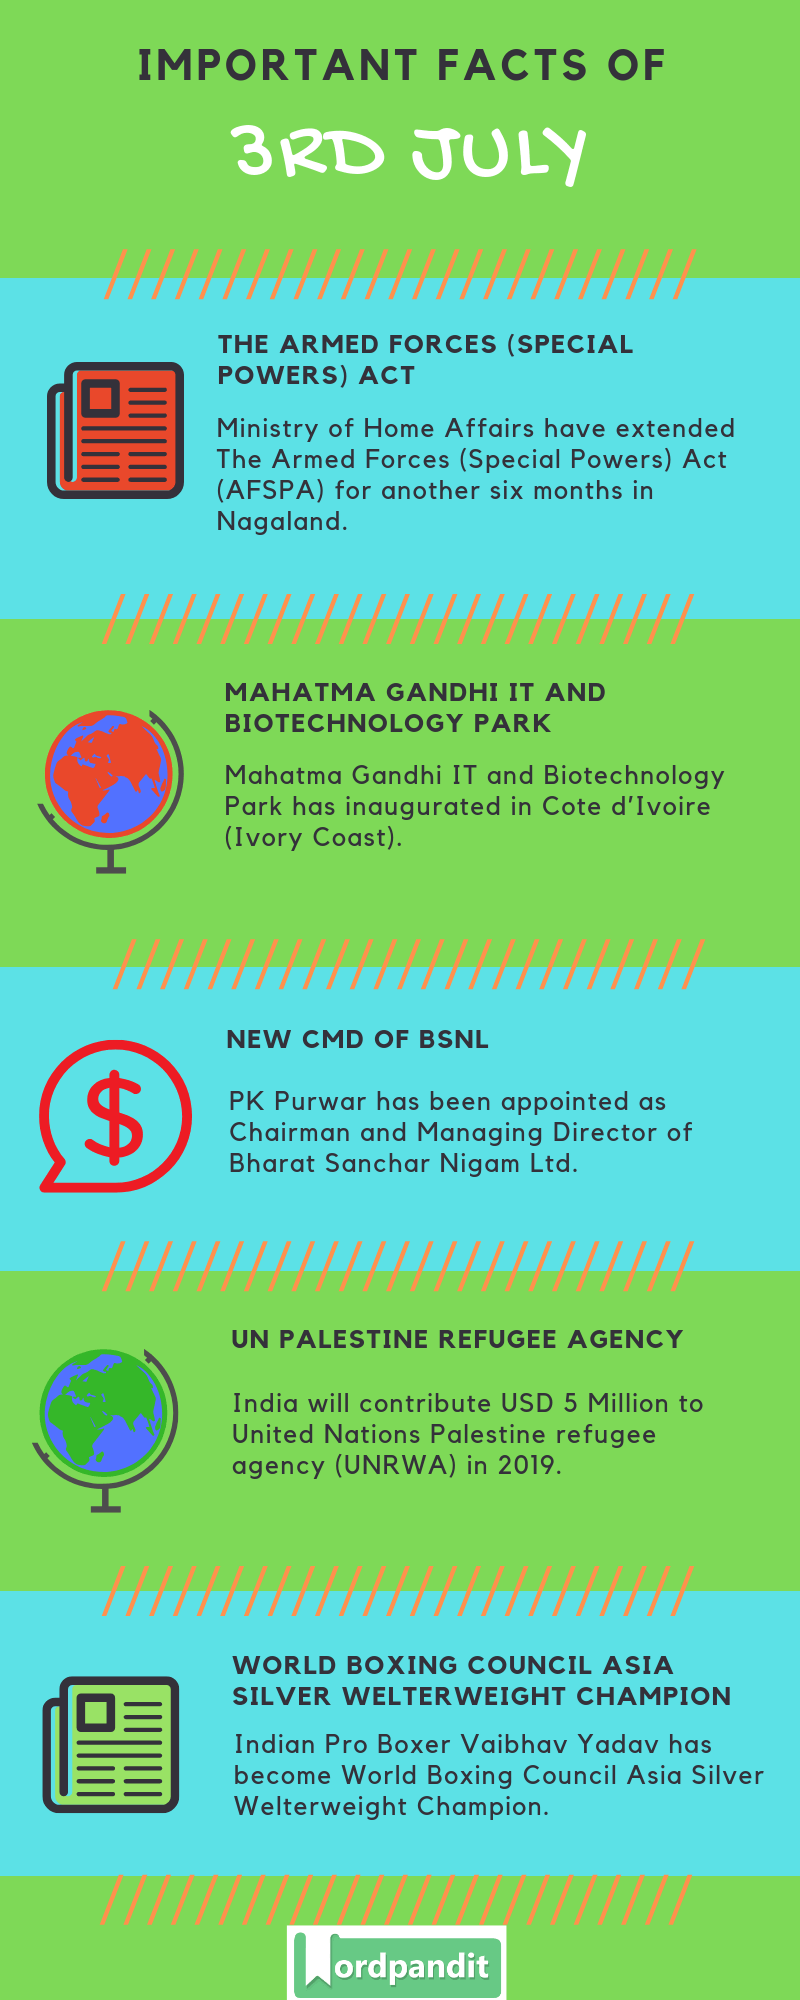 Daily Current Affairs 3 July 2019 Current Affairs Quiz 3 July 2019 Current Affairs Infographic